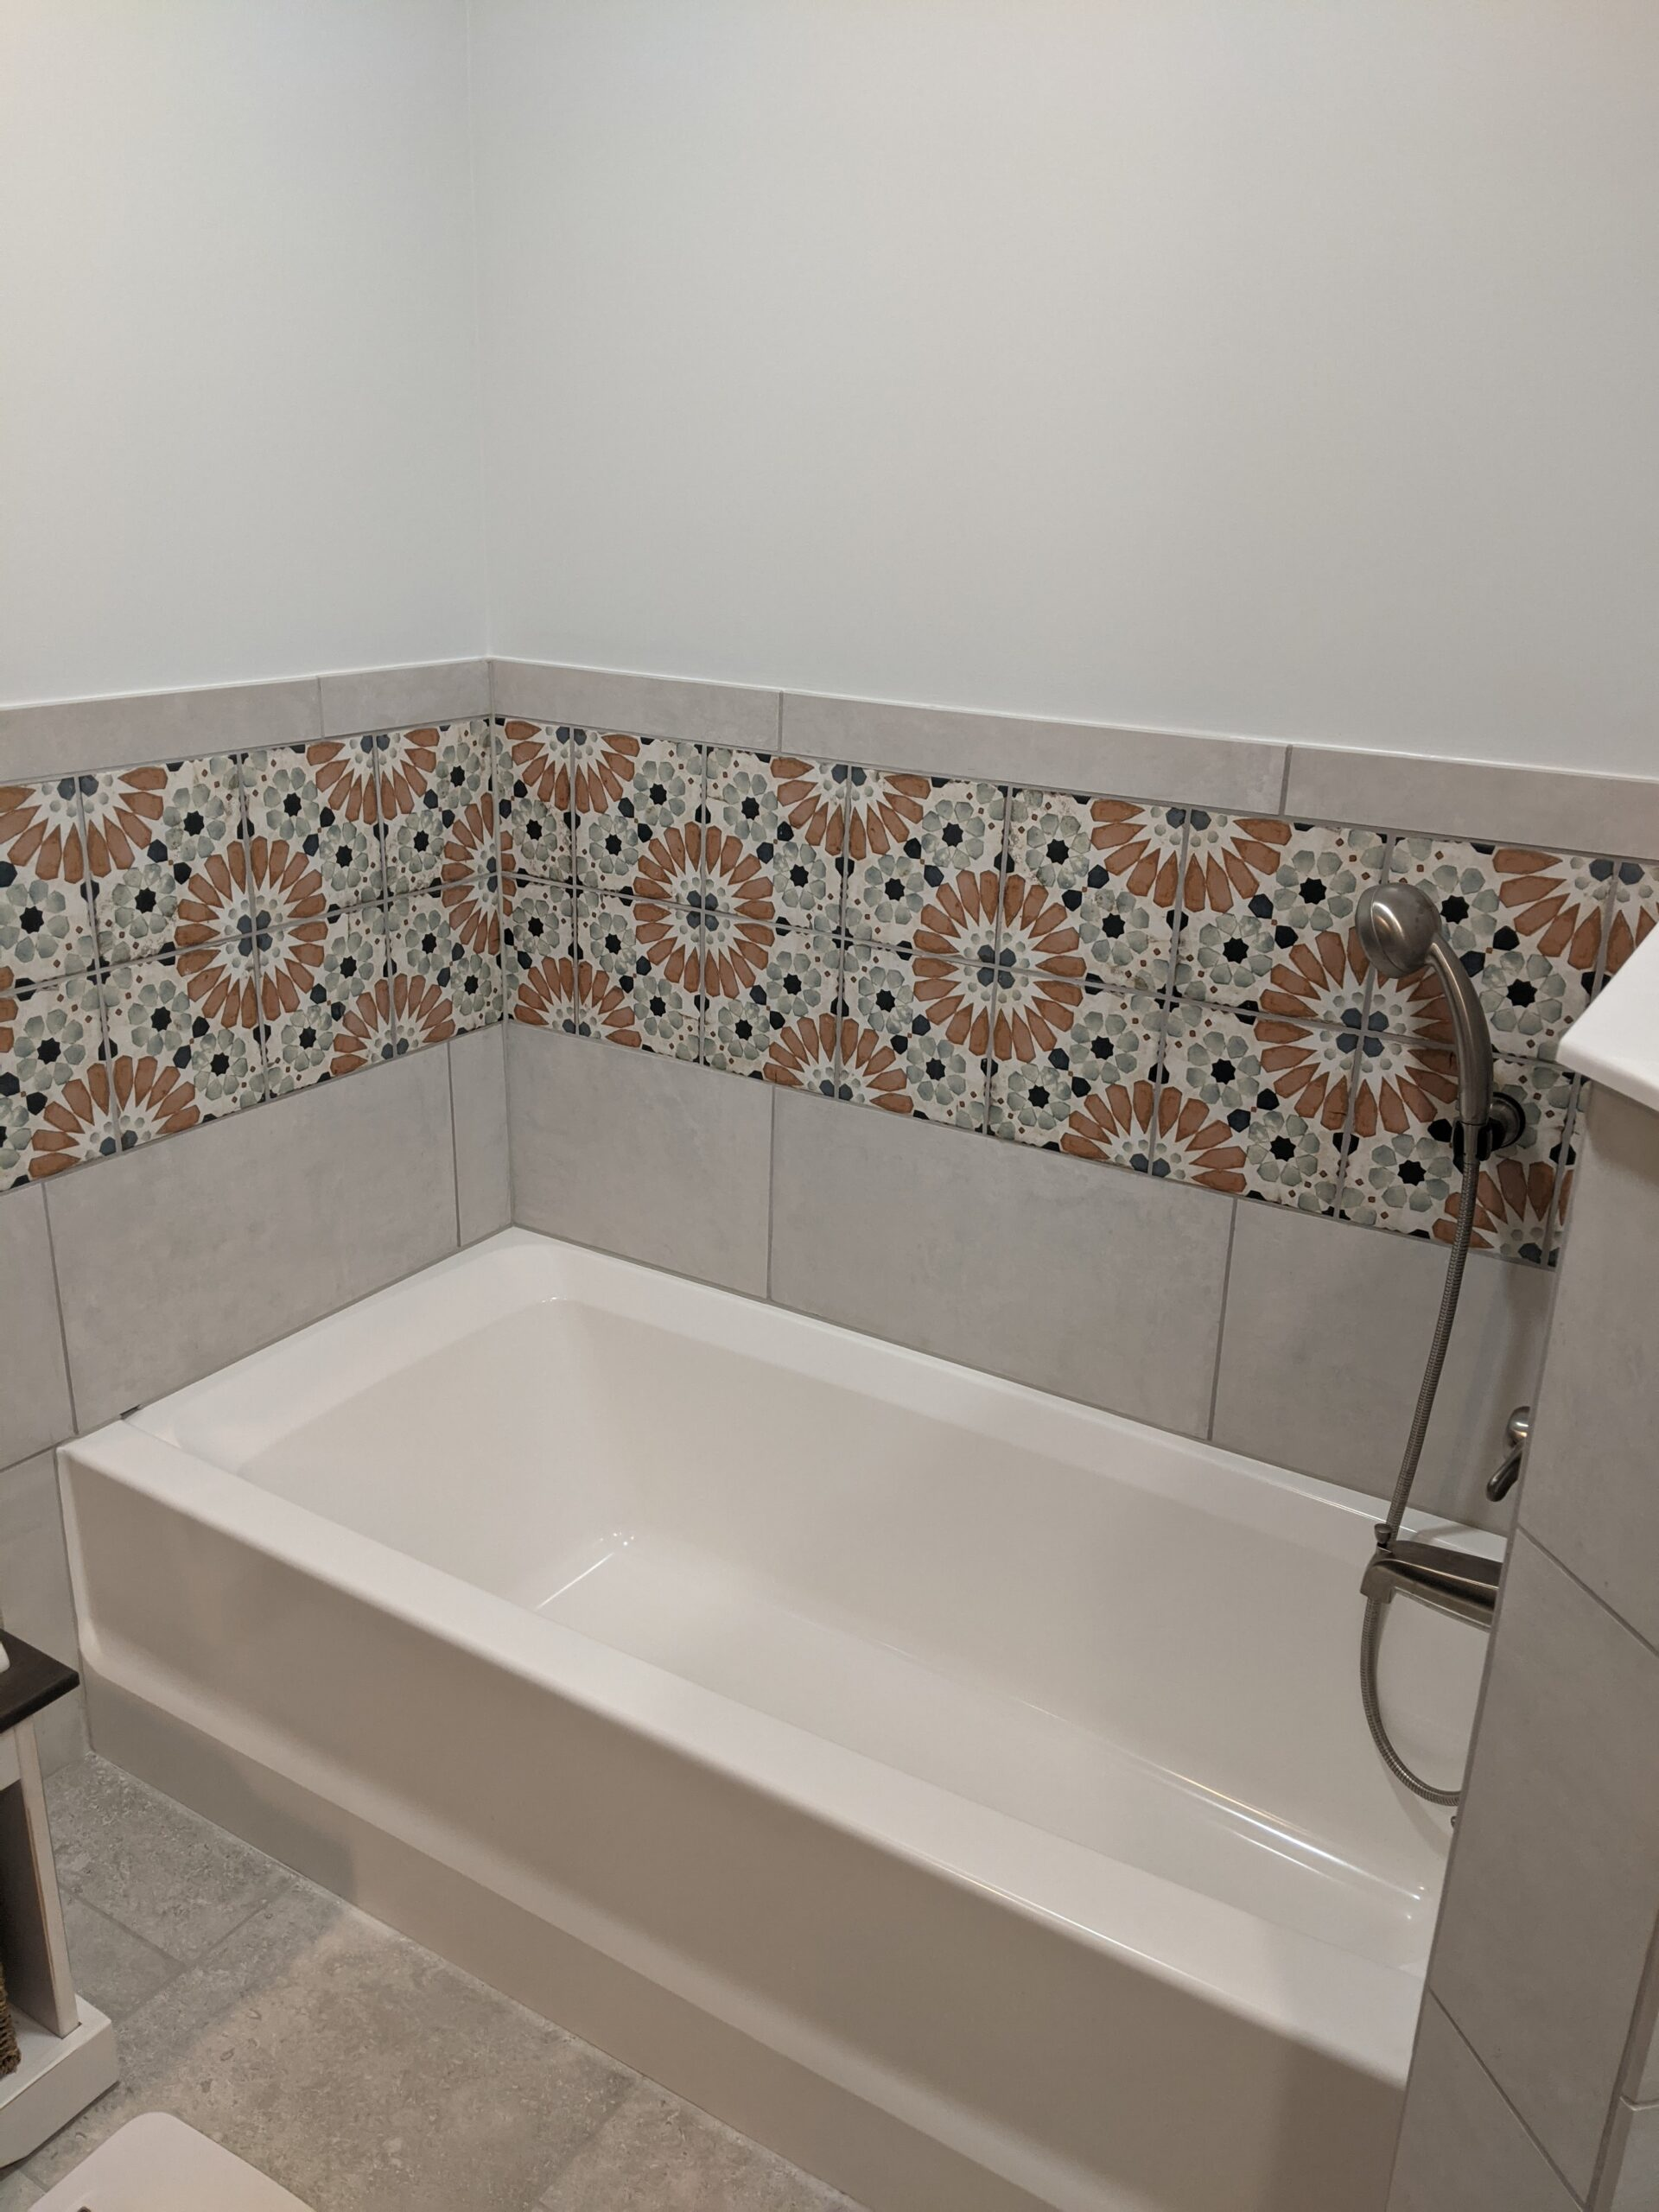 The tub area is now a standard tub with tile and decorative tile surrounding it.